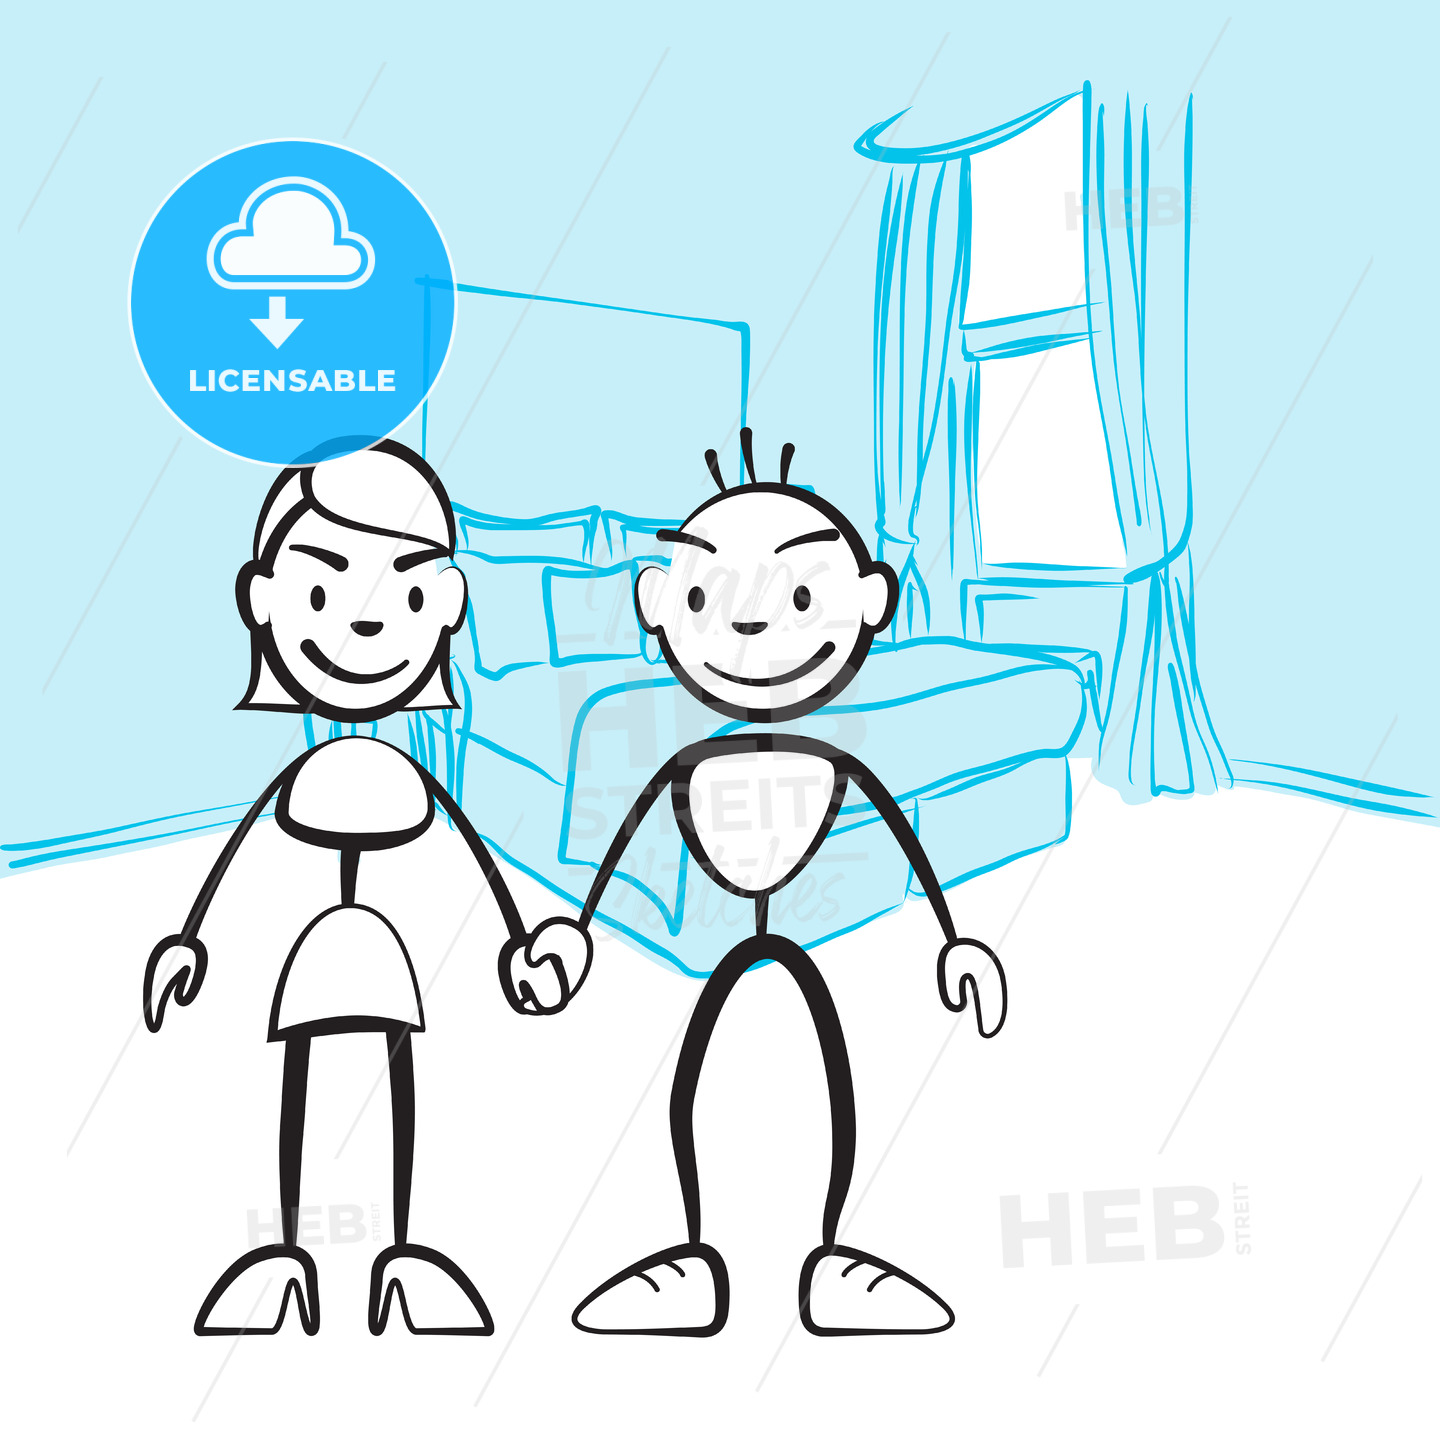 Pair of sticky figures for planning interior design - Hebstreits